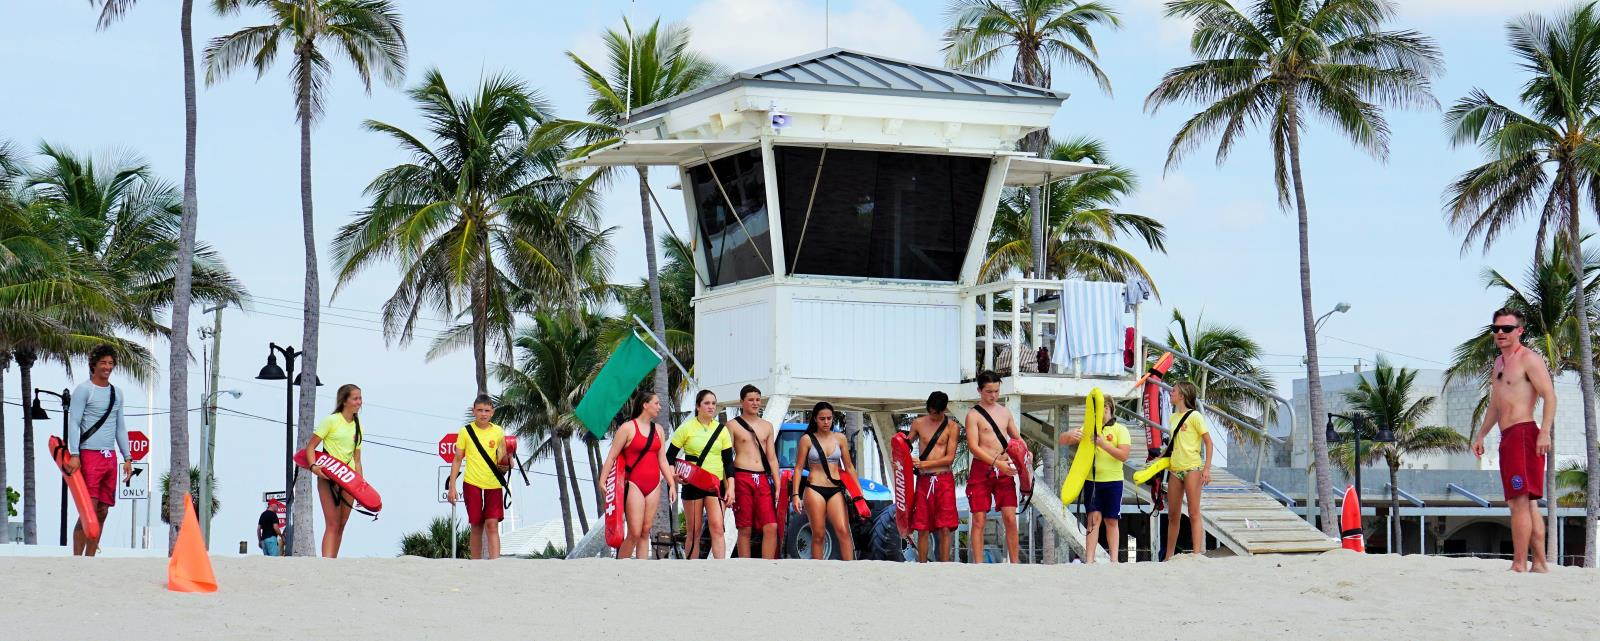 6498f493b91b The Junior Lifeguard Program is a program offered to youth